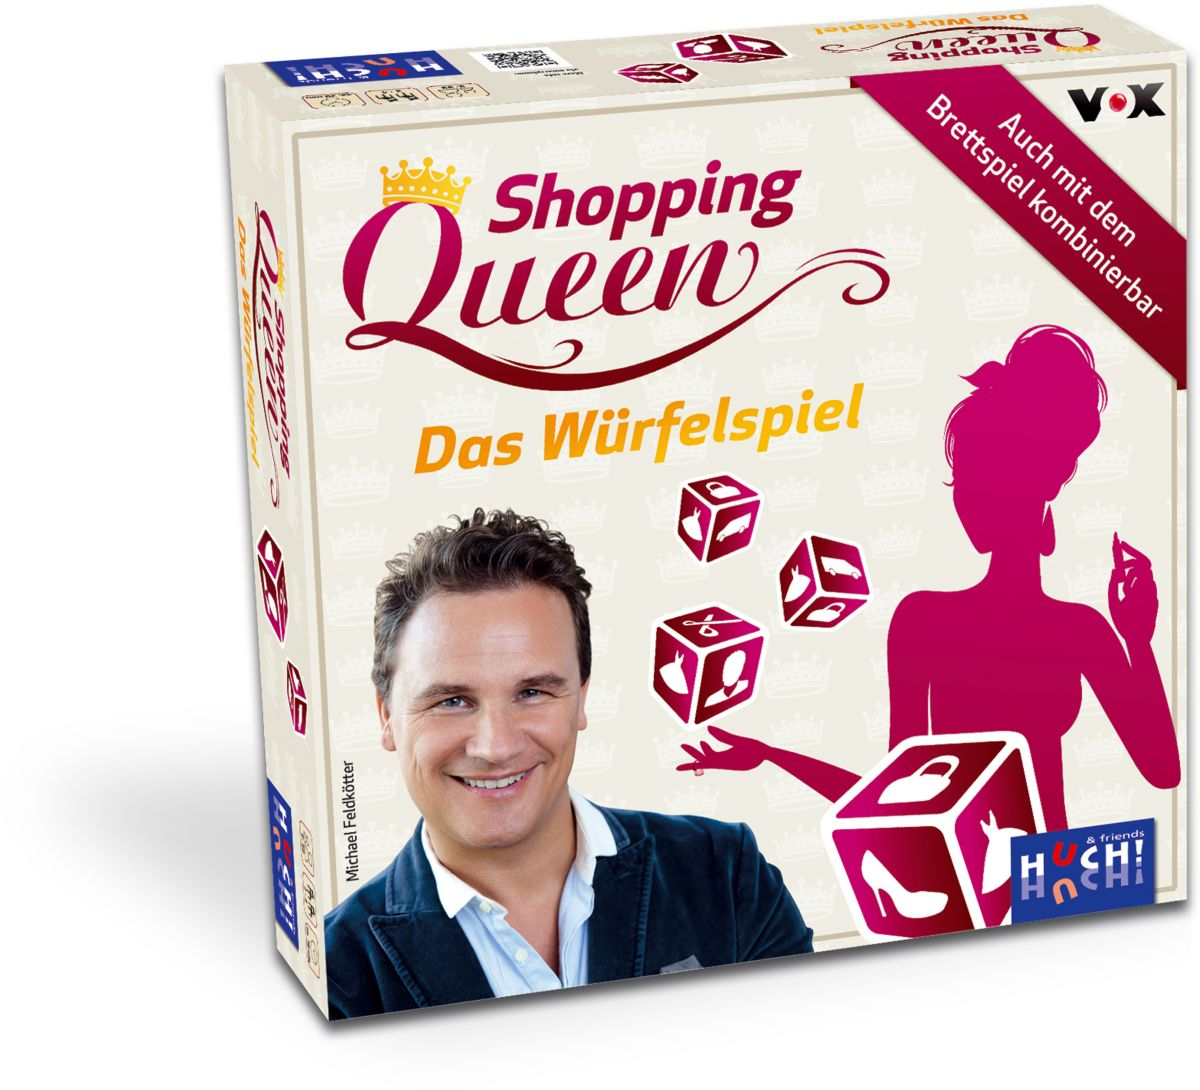 Huch! & friends Würfelspiel, »Shopping Queen Wü...